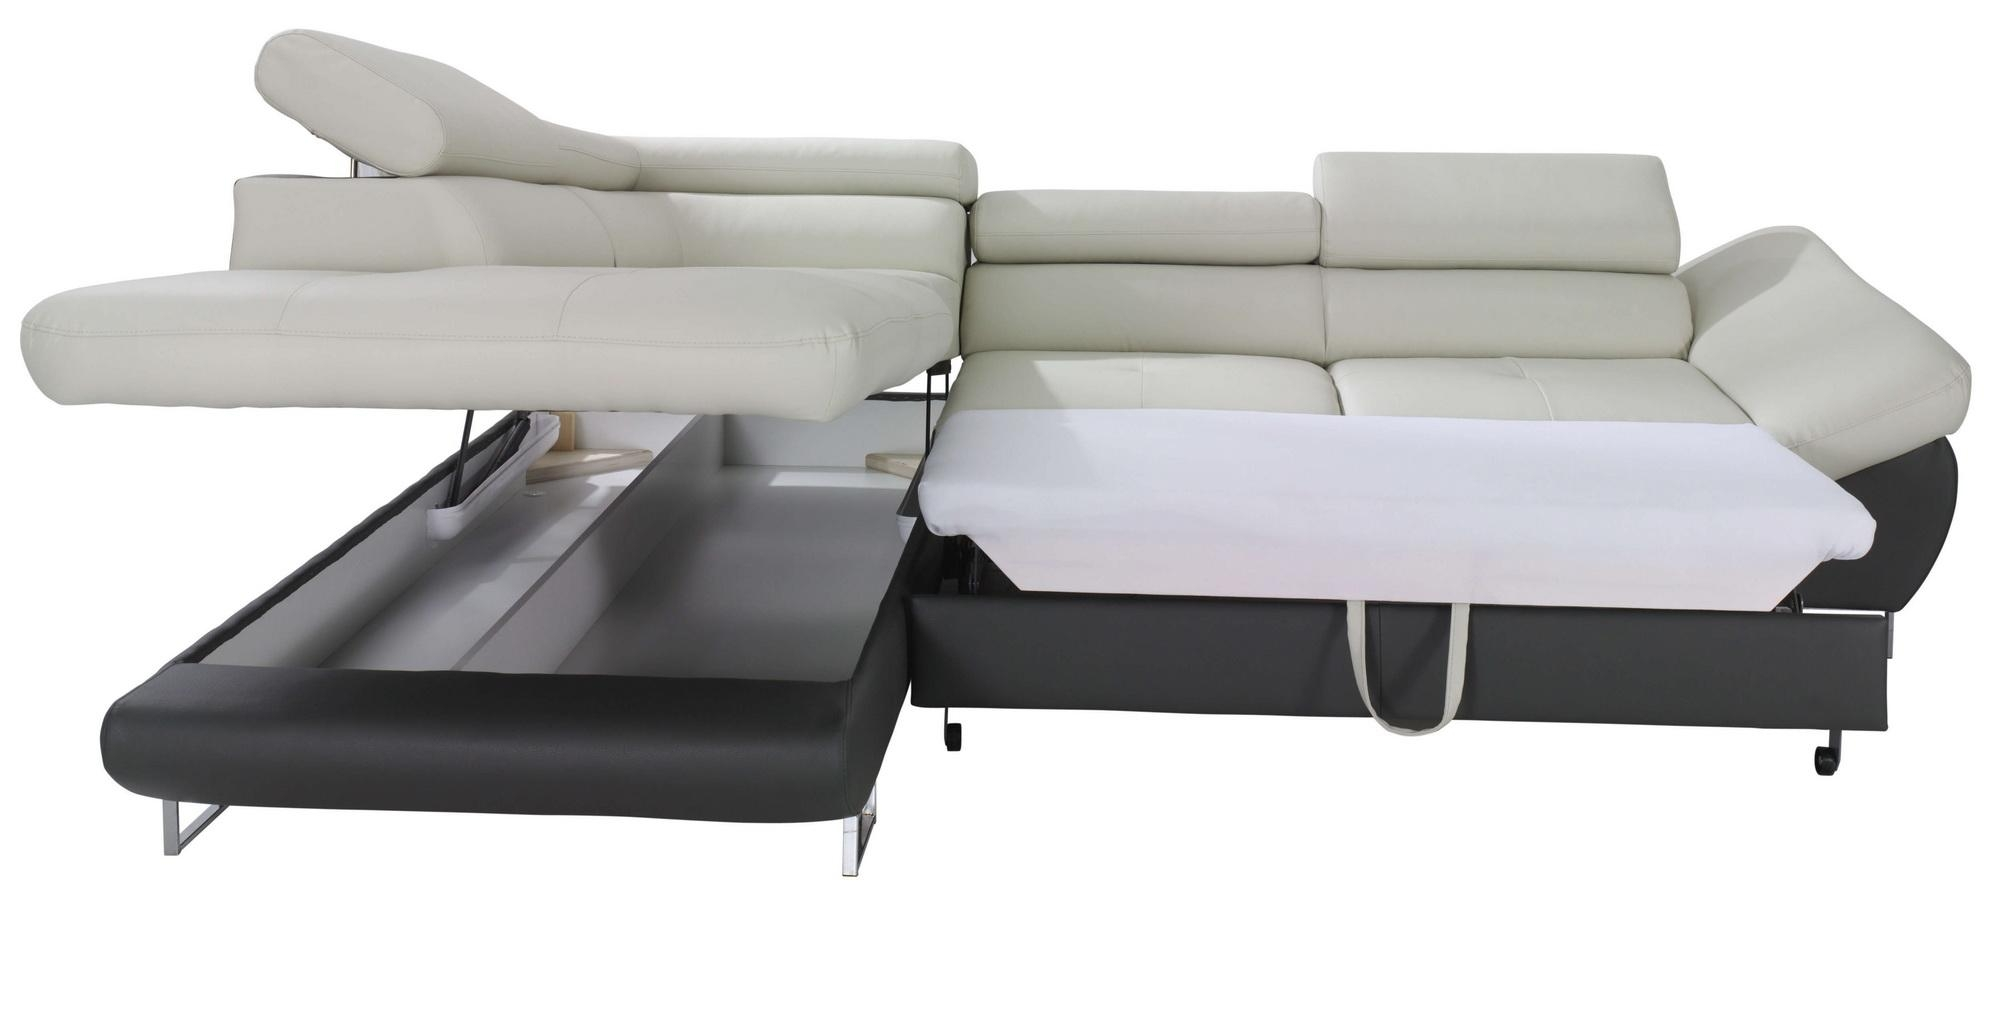 Fabio Sectional Sofa Sleeper With Storage, Creative Furniture Intended For Sectional Sofas With Sleeper And Chaise (Image 2 of 21)